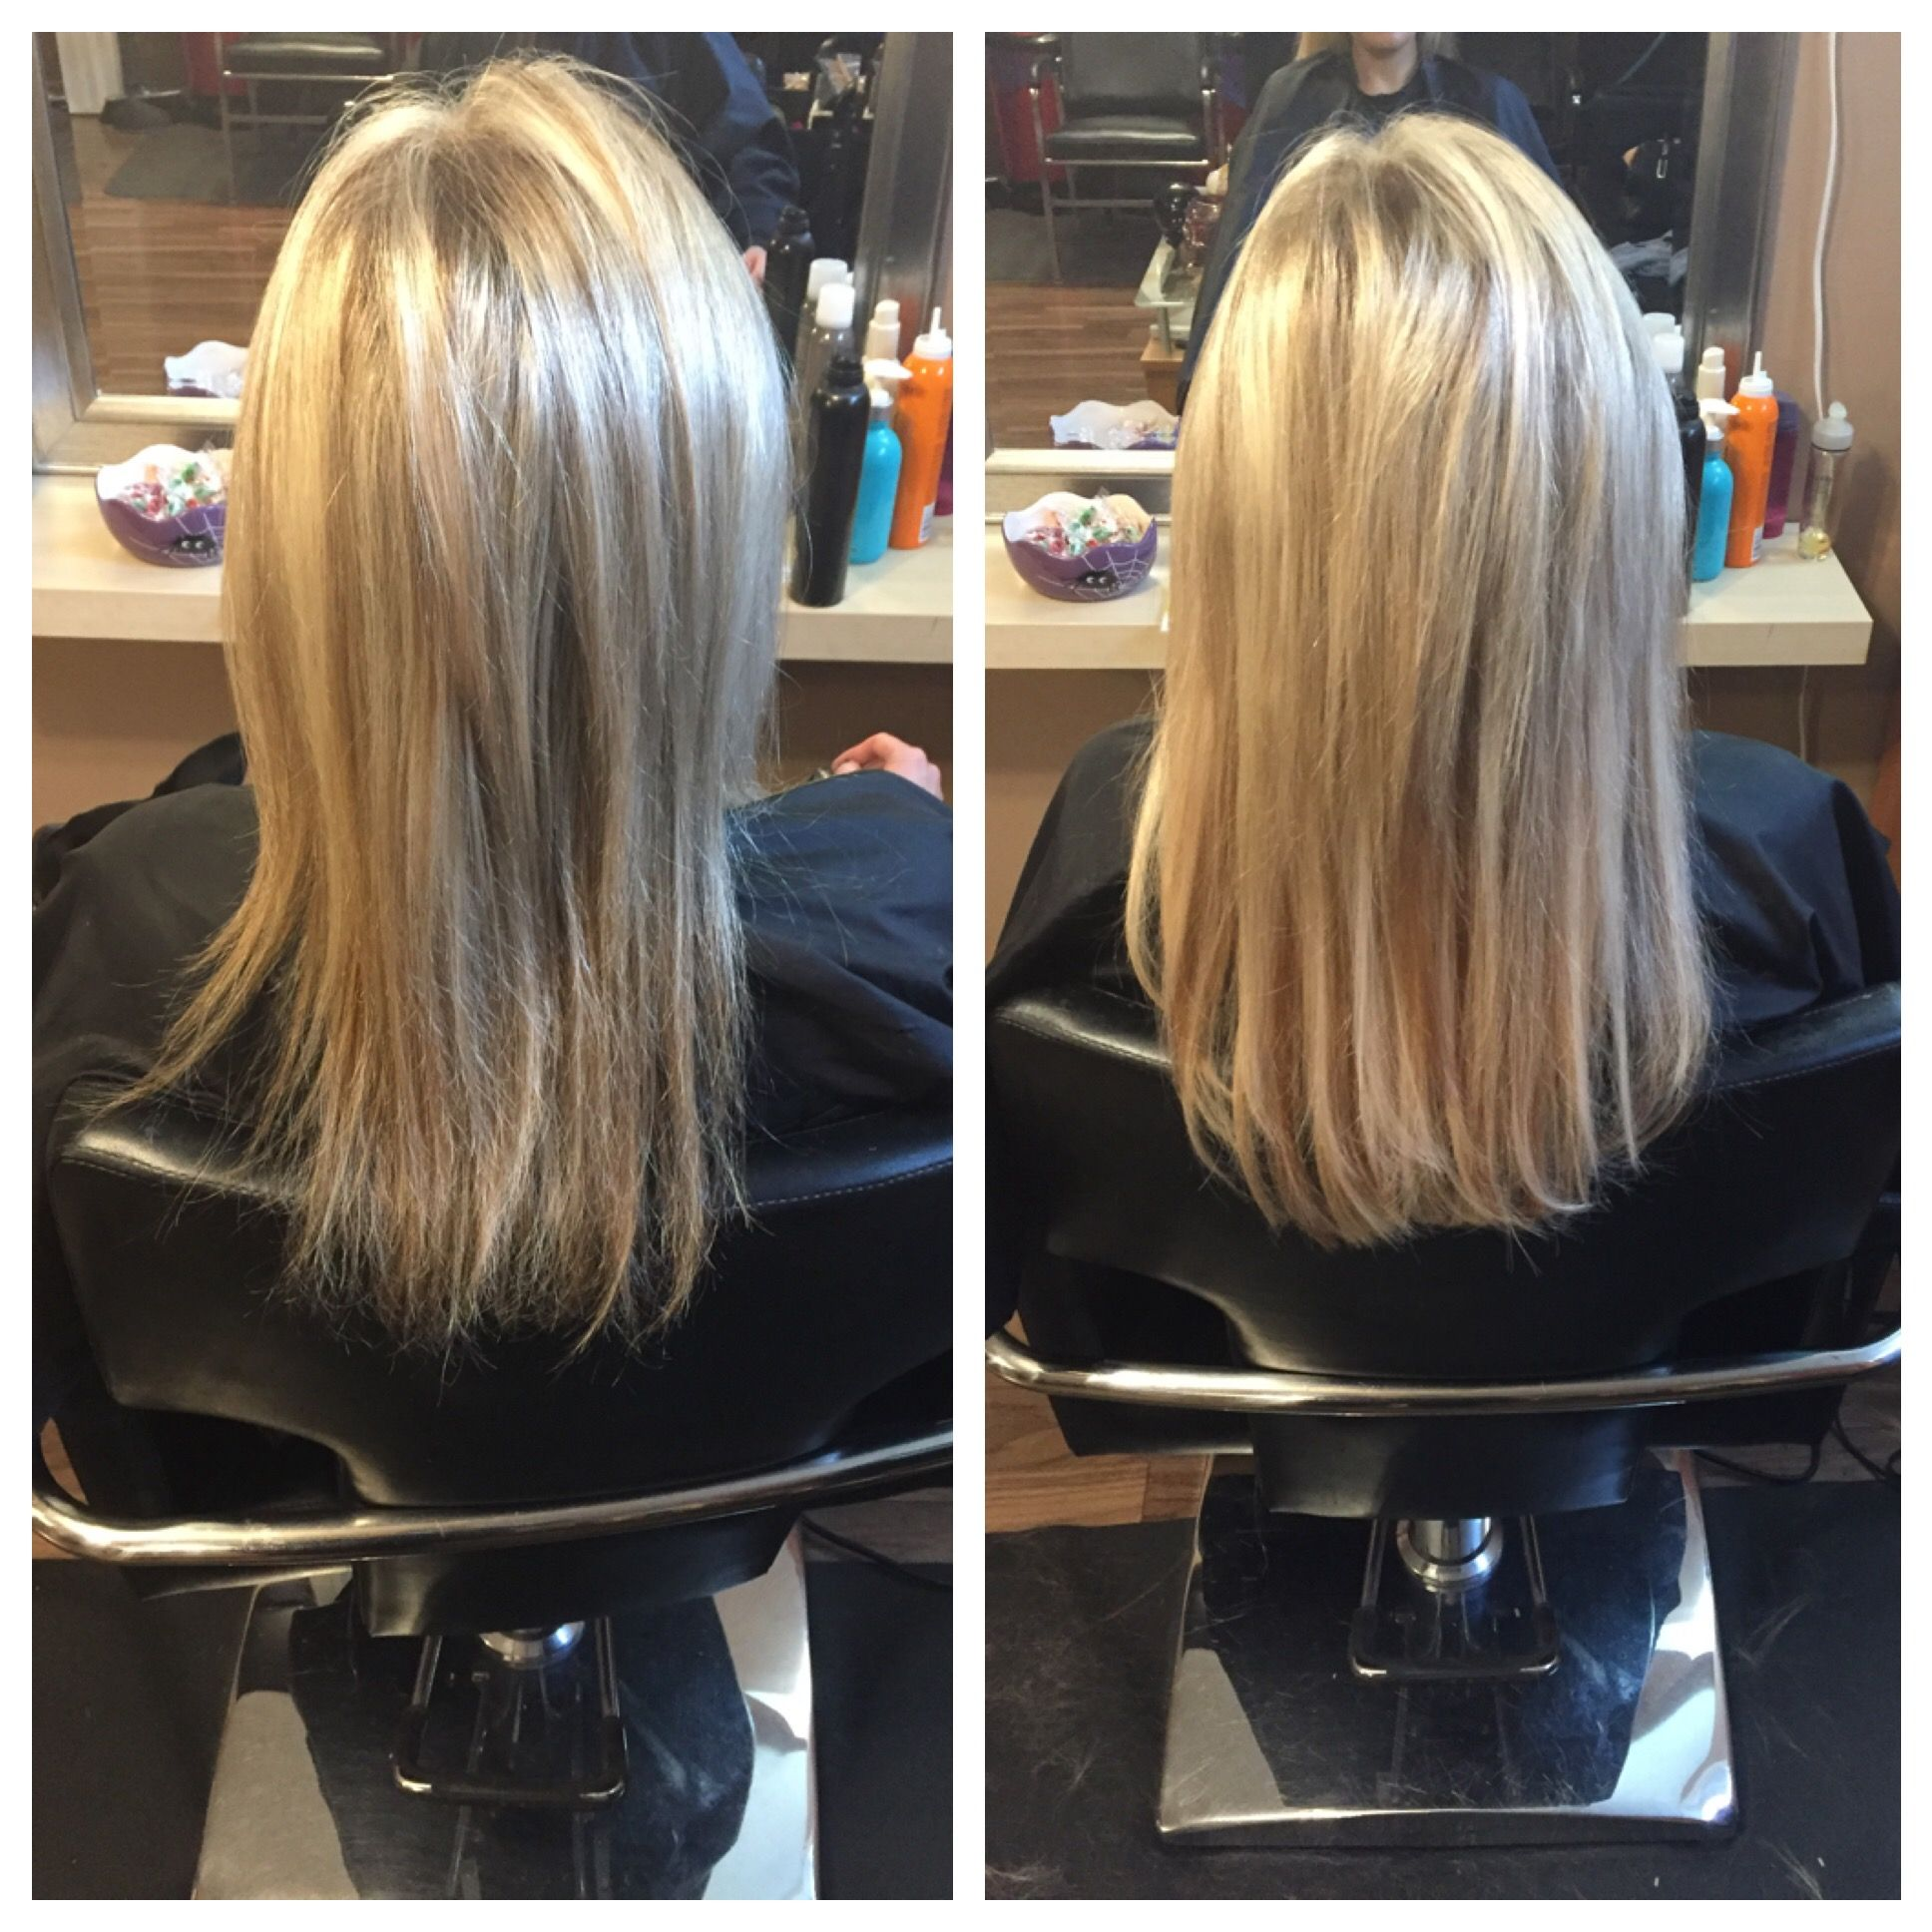 Thicken Hair With Fusion Extensions Hair Styles Pinterest